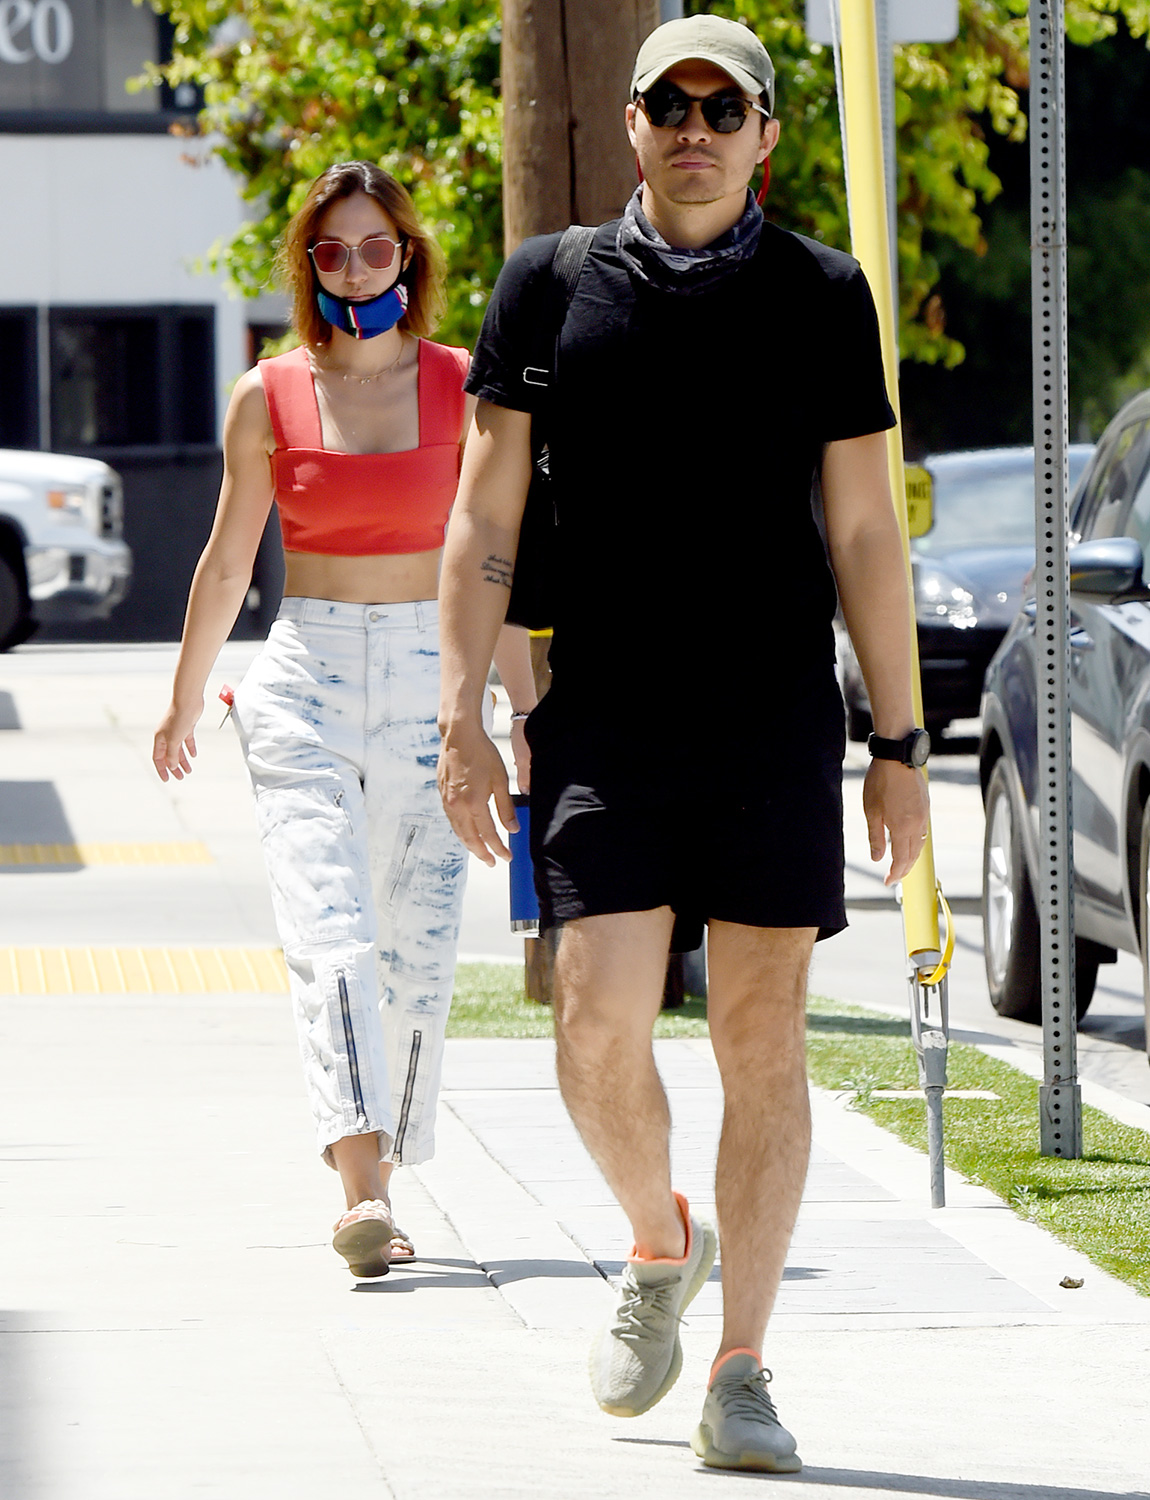 Henry Golding and Liv Lo go for a Leisurely Stroll Around the Neighborhood